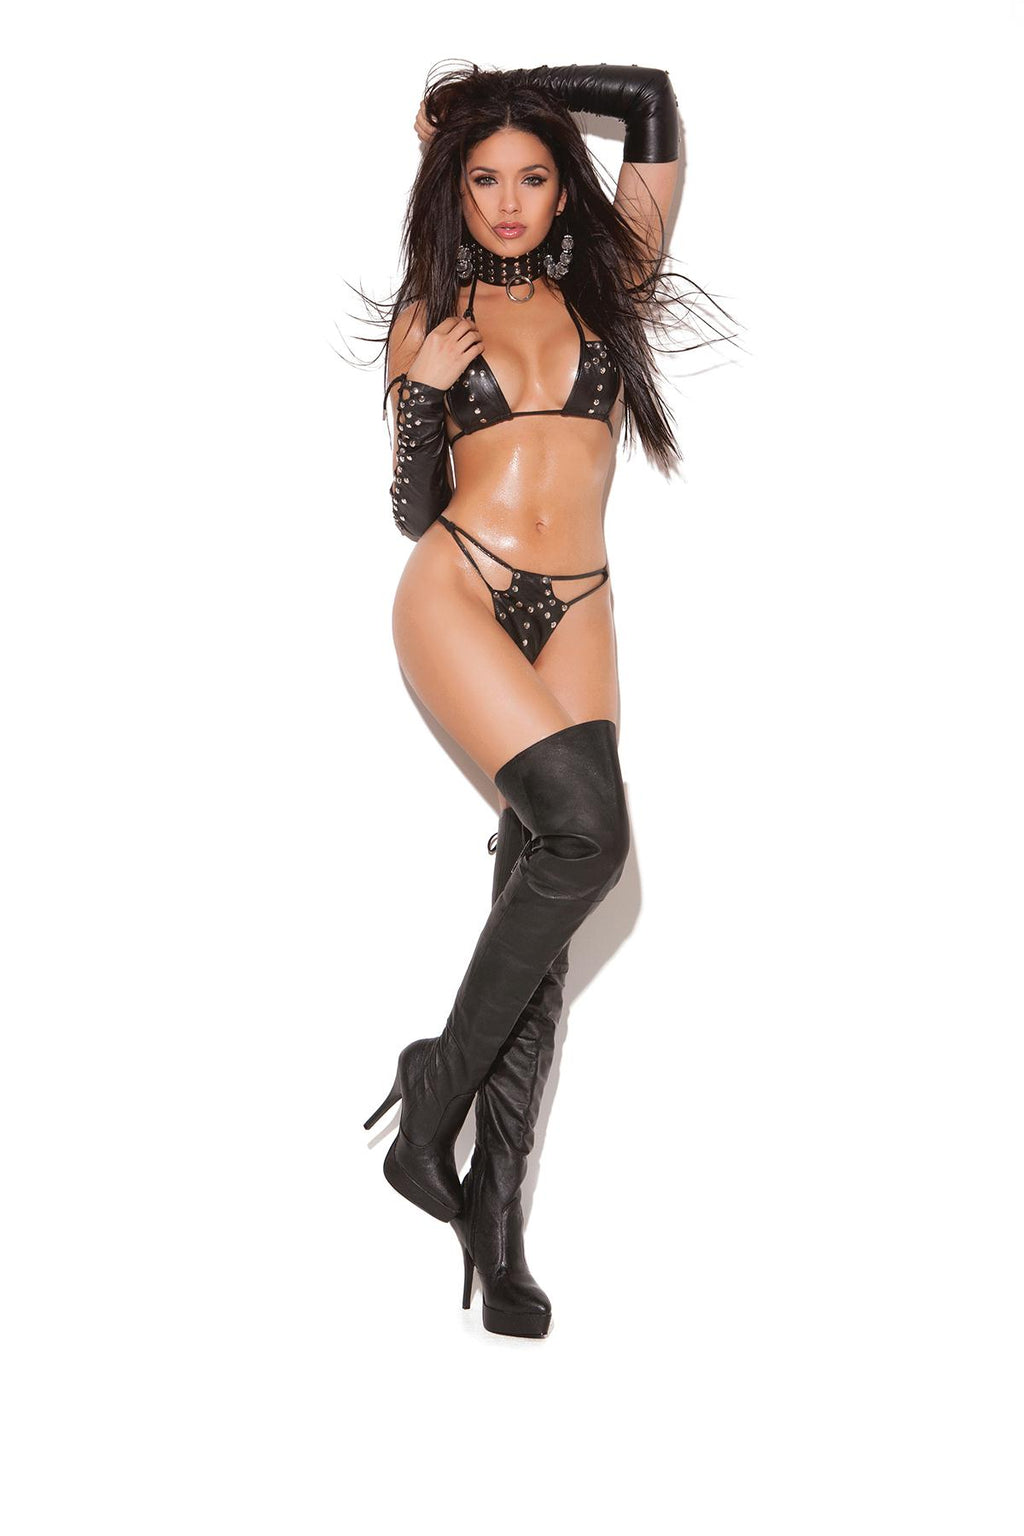 Leather Bra,g-string & Gloves